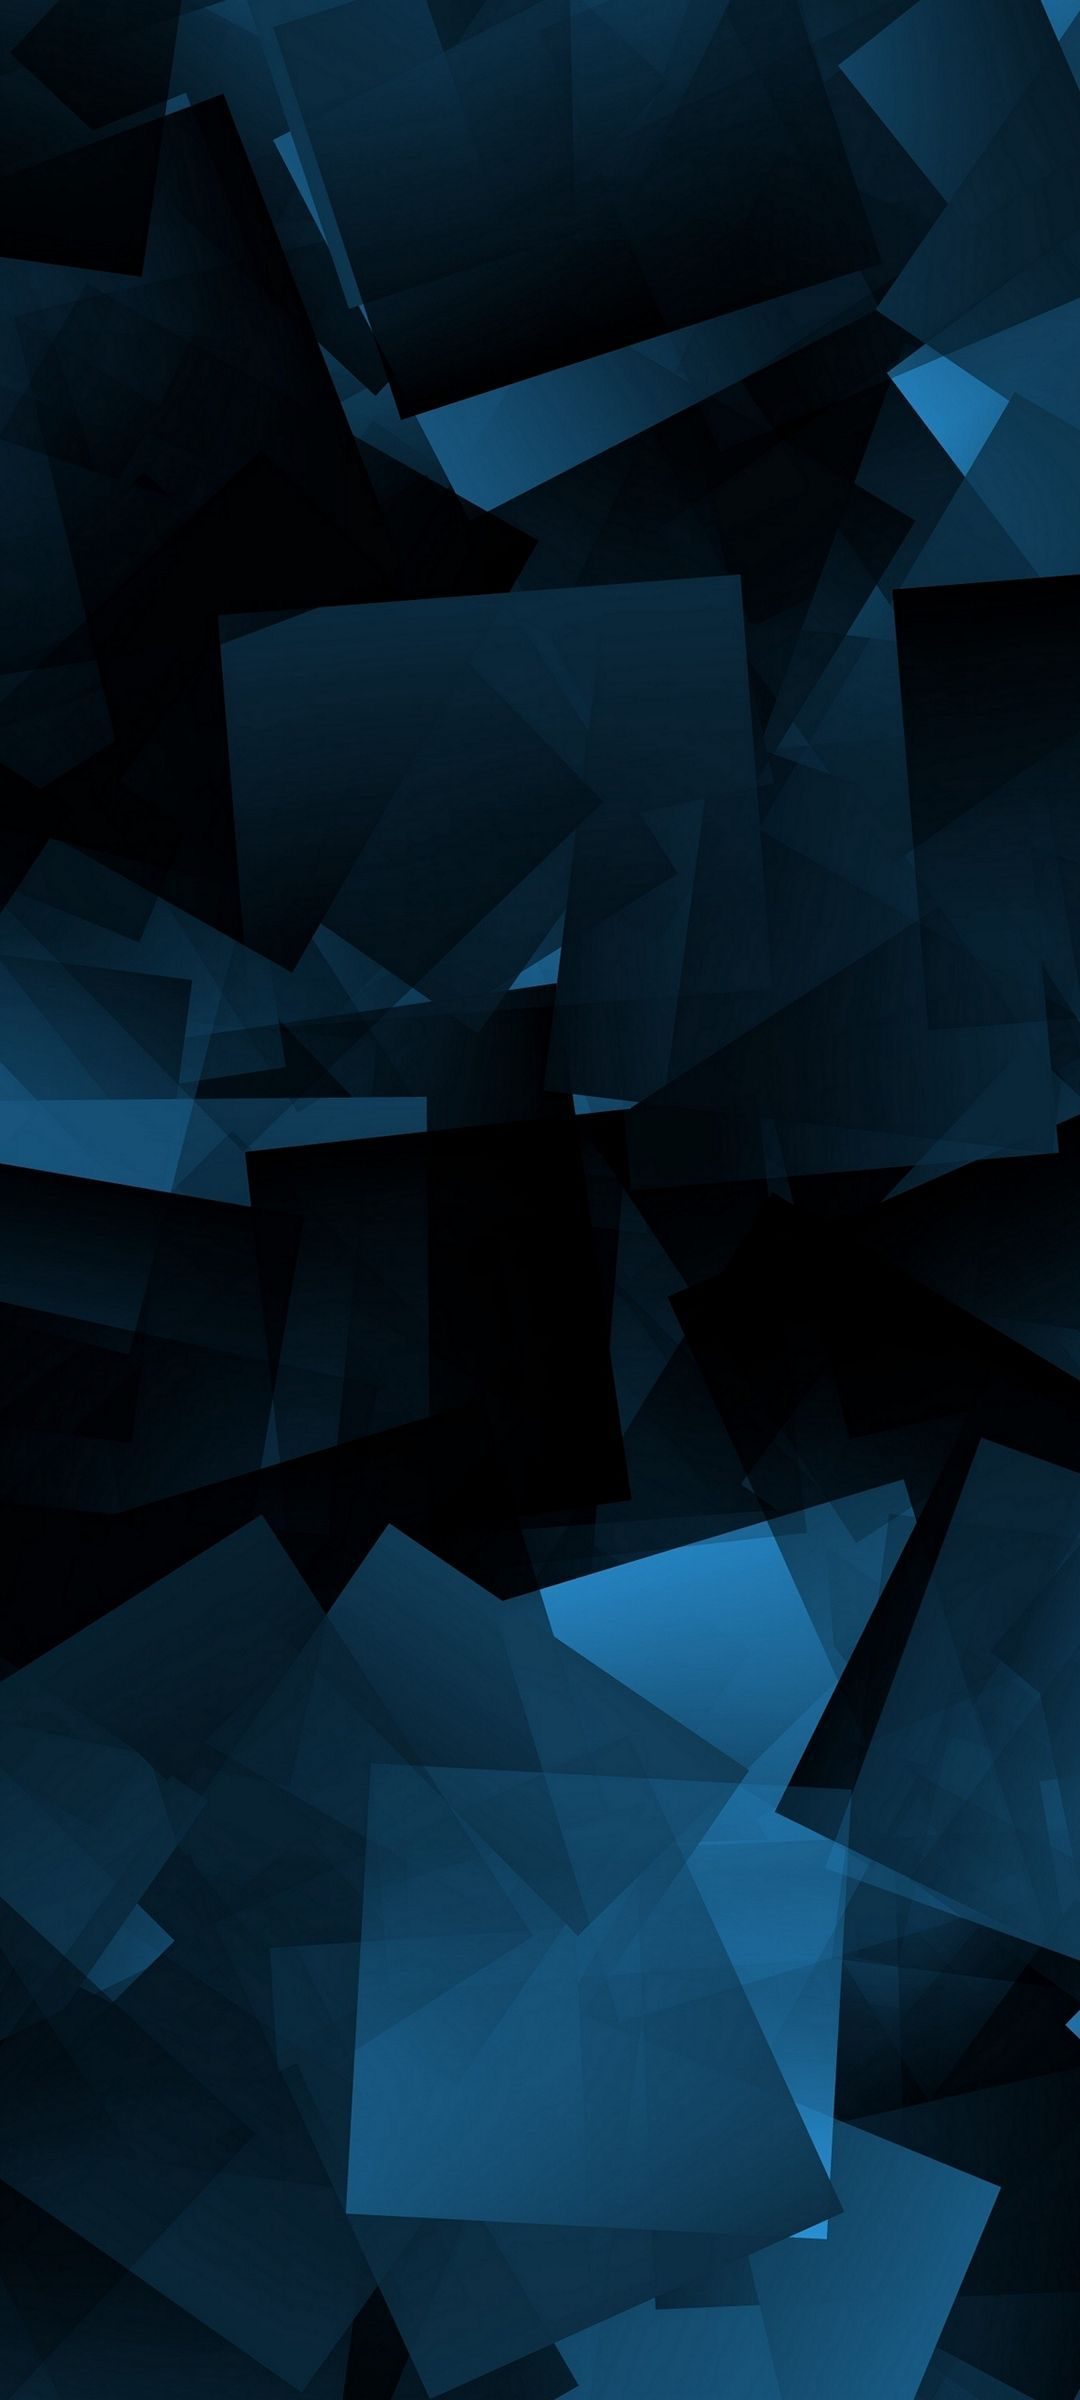 Abstraction-Shapes-Dark-Background-1080x2400.jpg